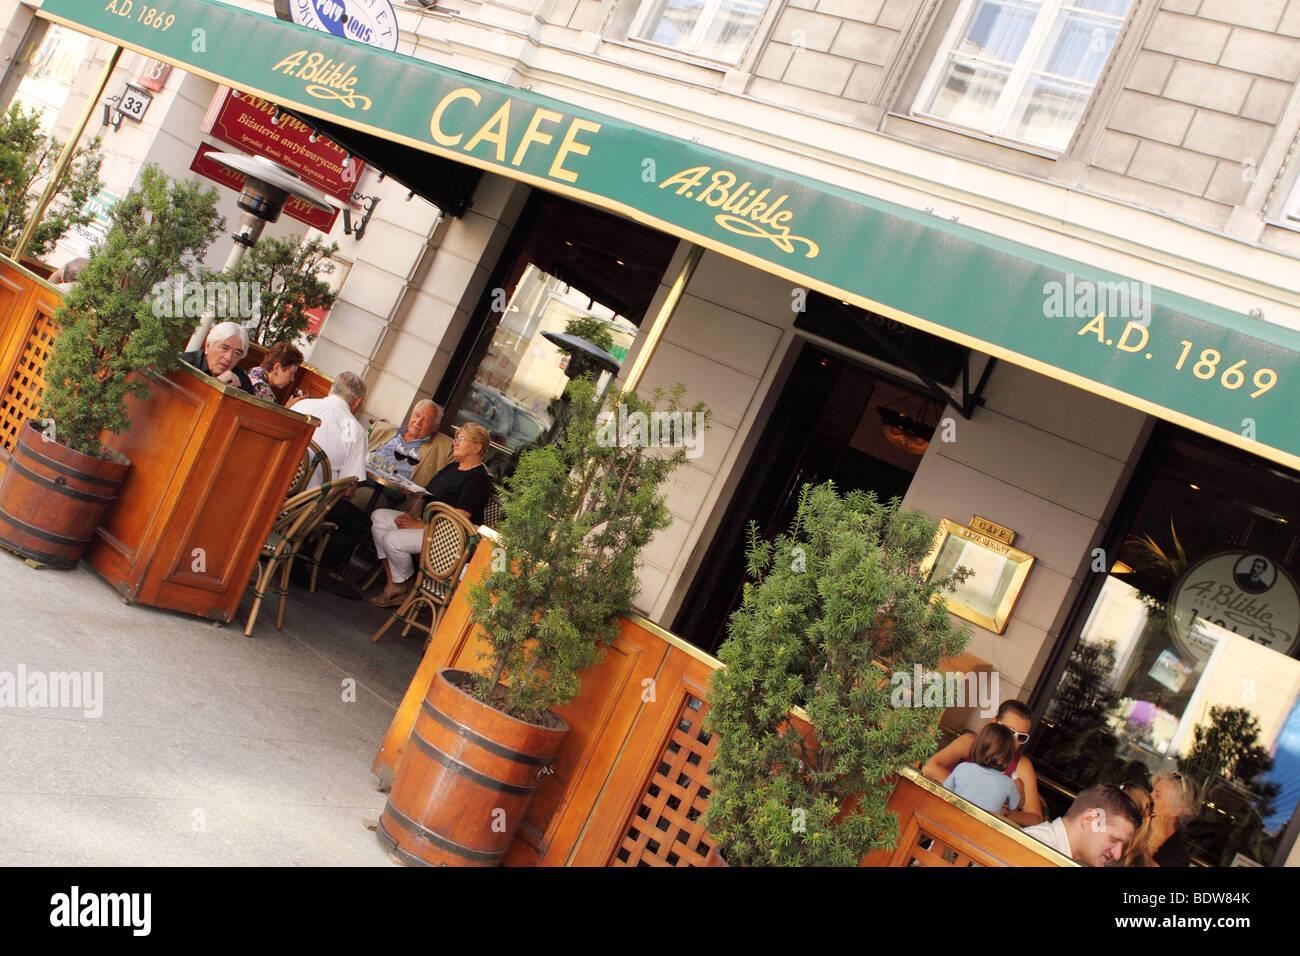 Warsaw the A Blikle cafe and cake house on Ul Ulica Nowy Swiat Warsaw Poland Stock Photo